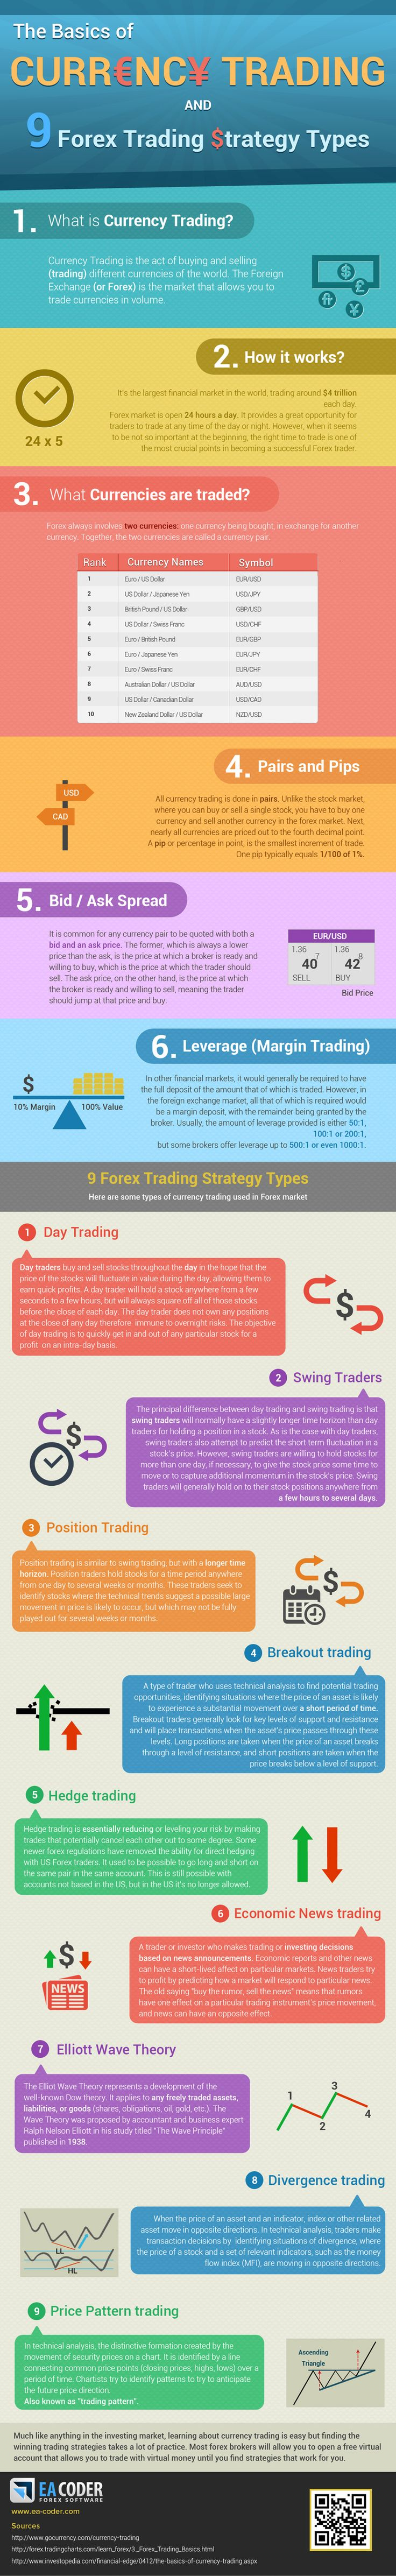 infographic currency trading basics an 9 forex strategy types - Best Currency Trader